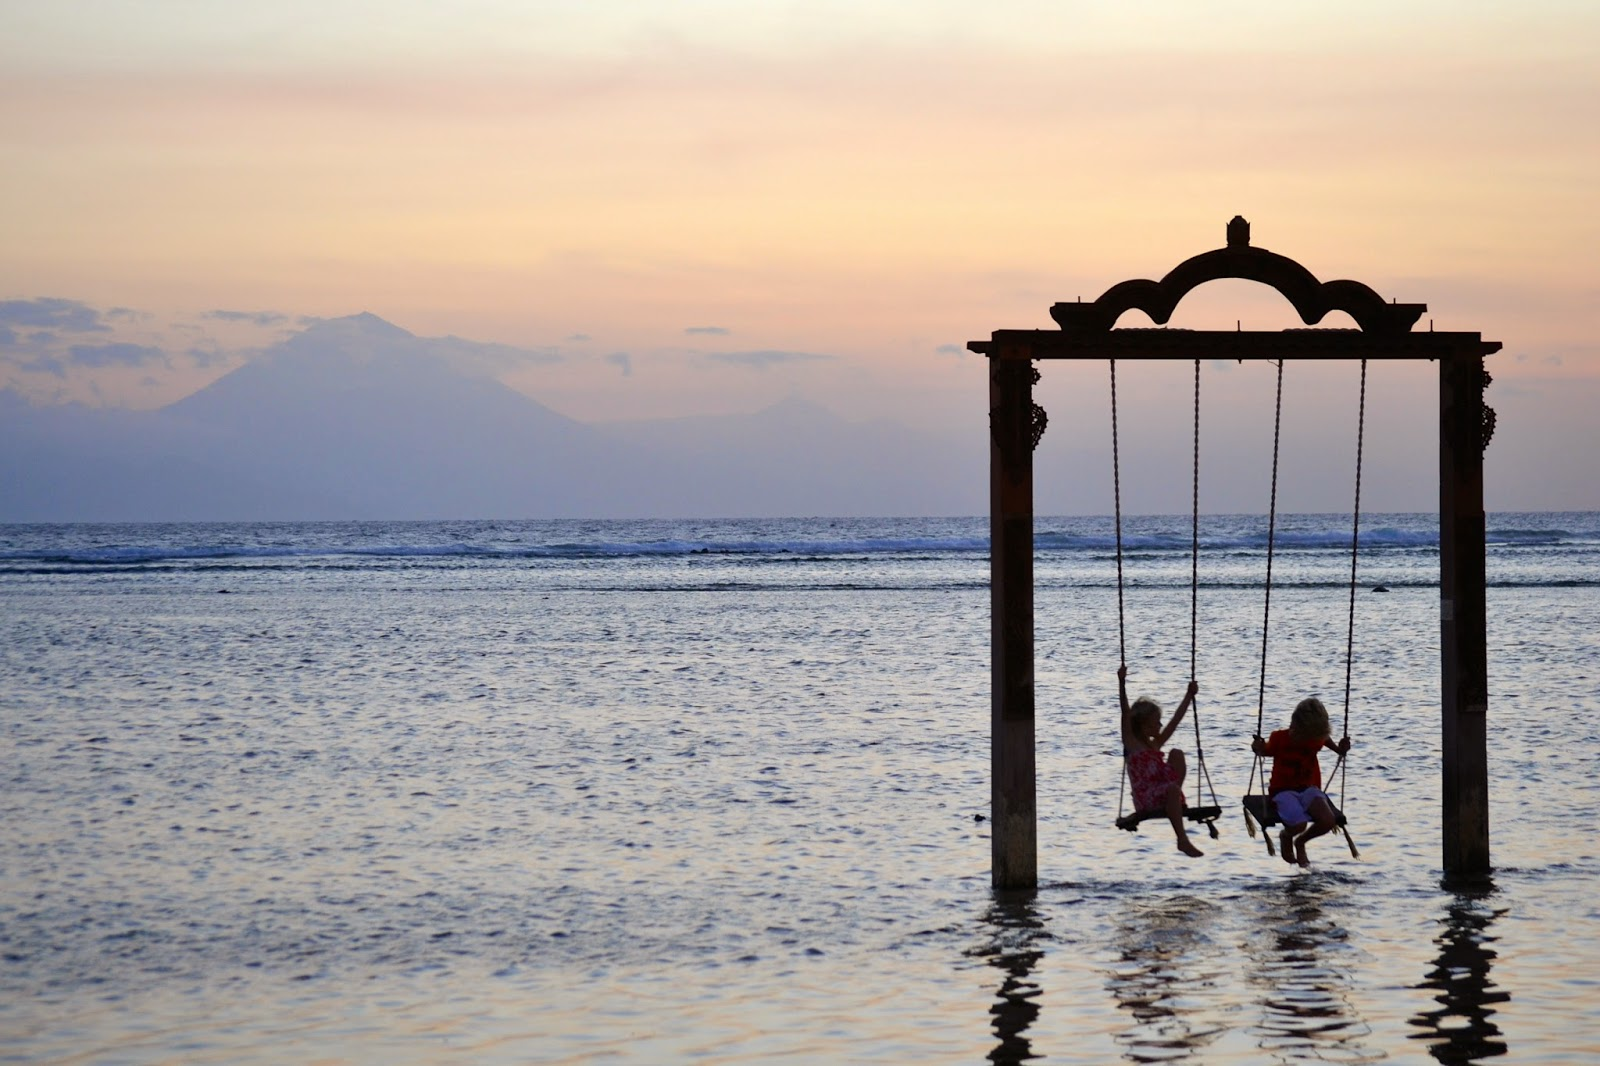 Sunset Bar en Gili Trawangan, Indonesia